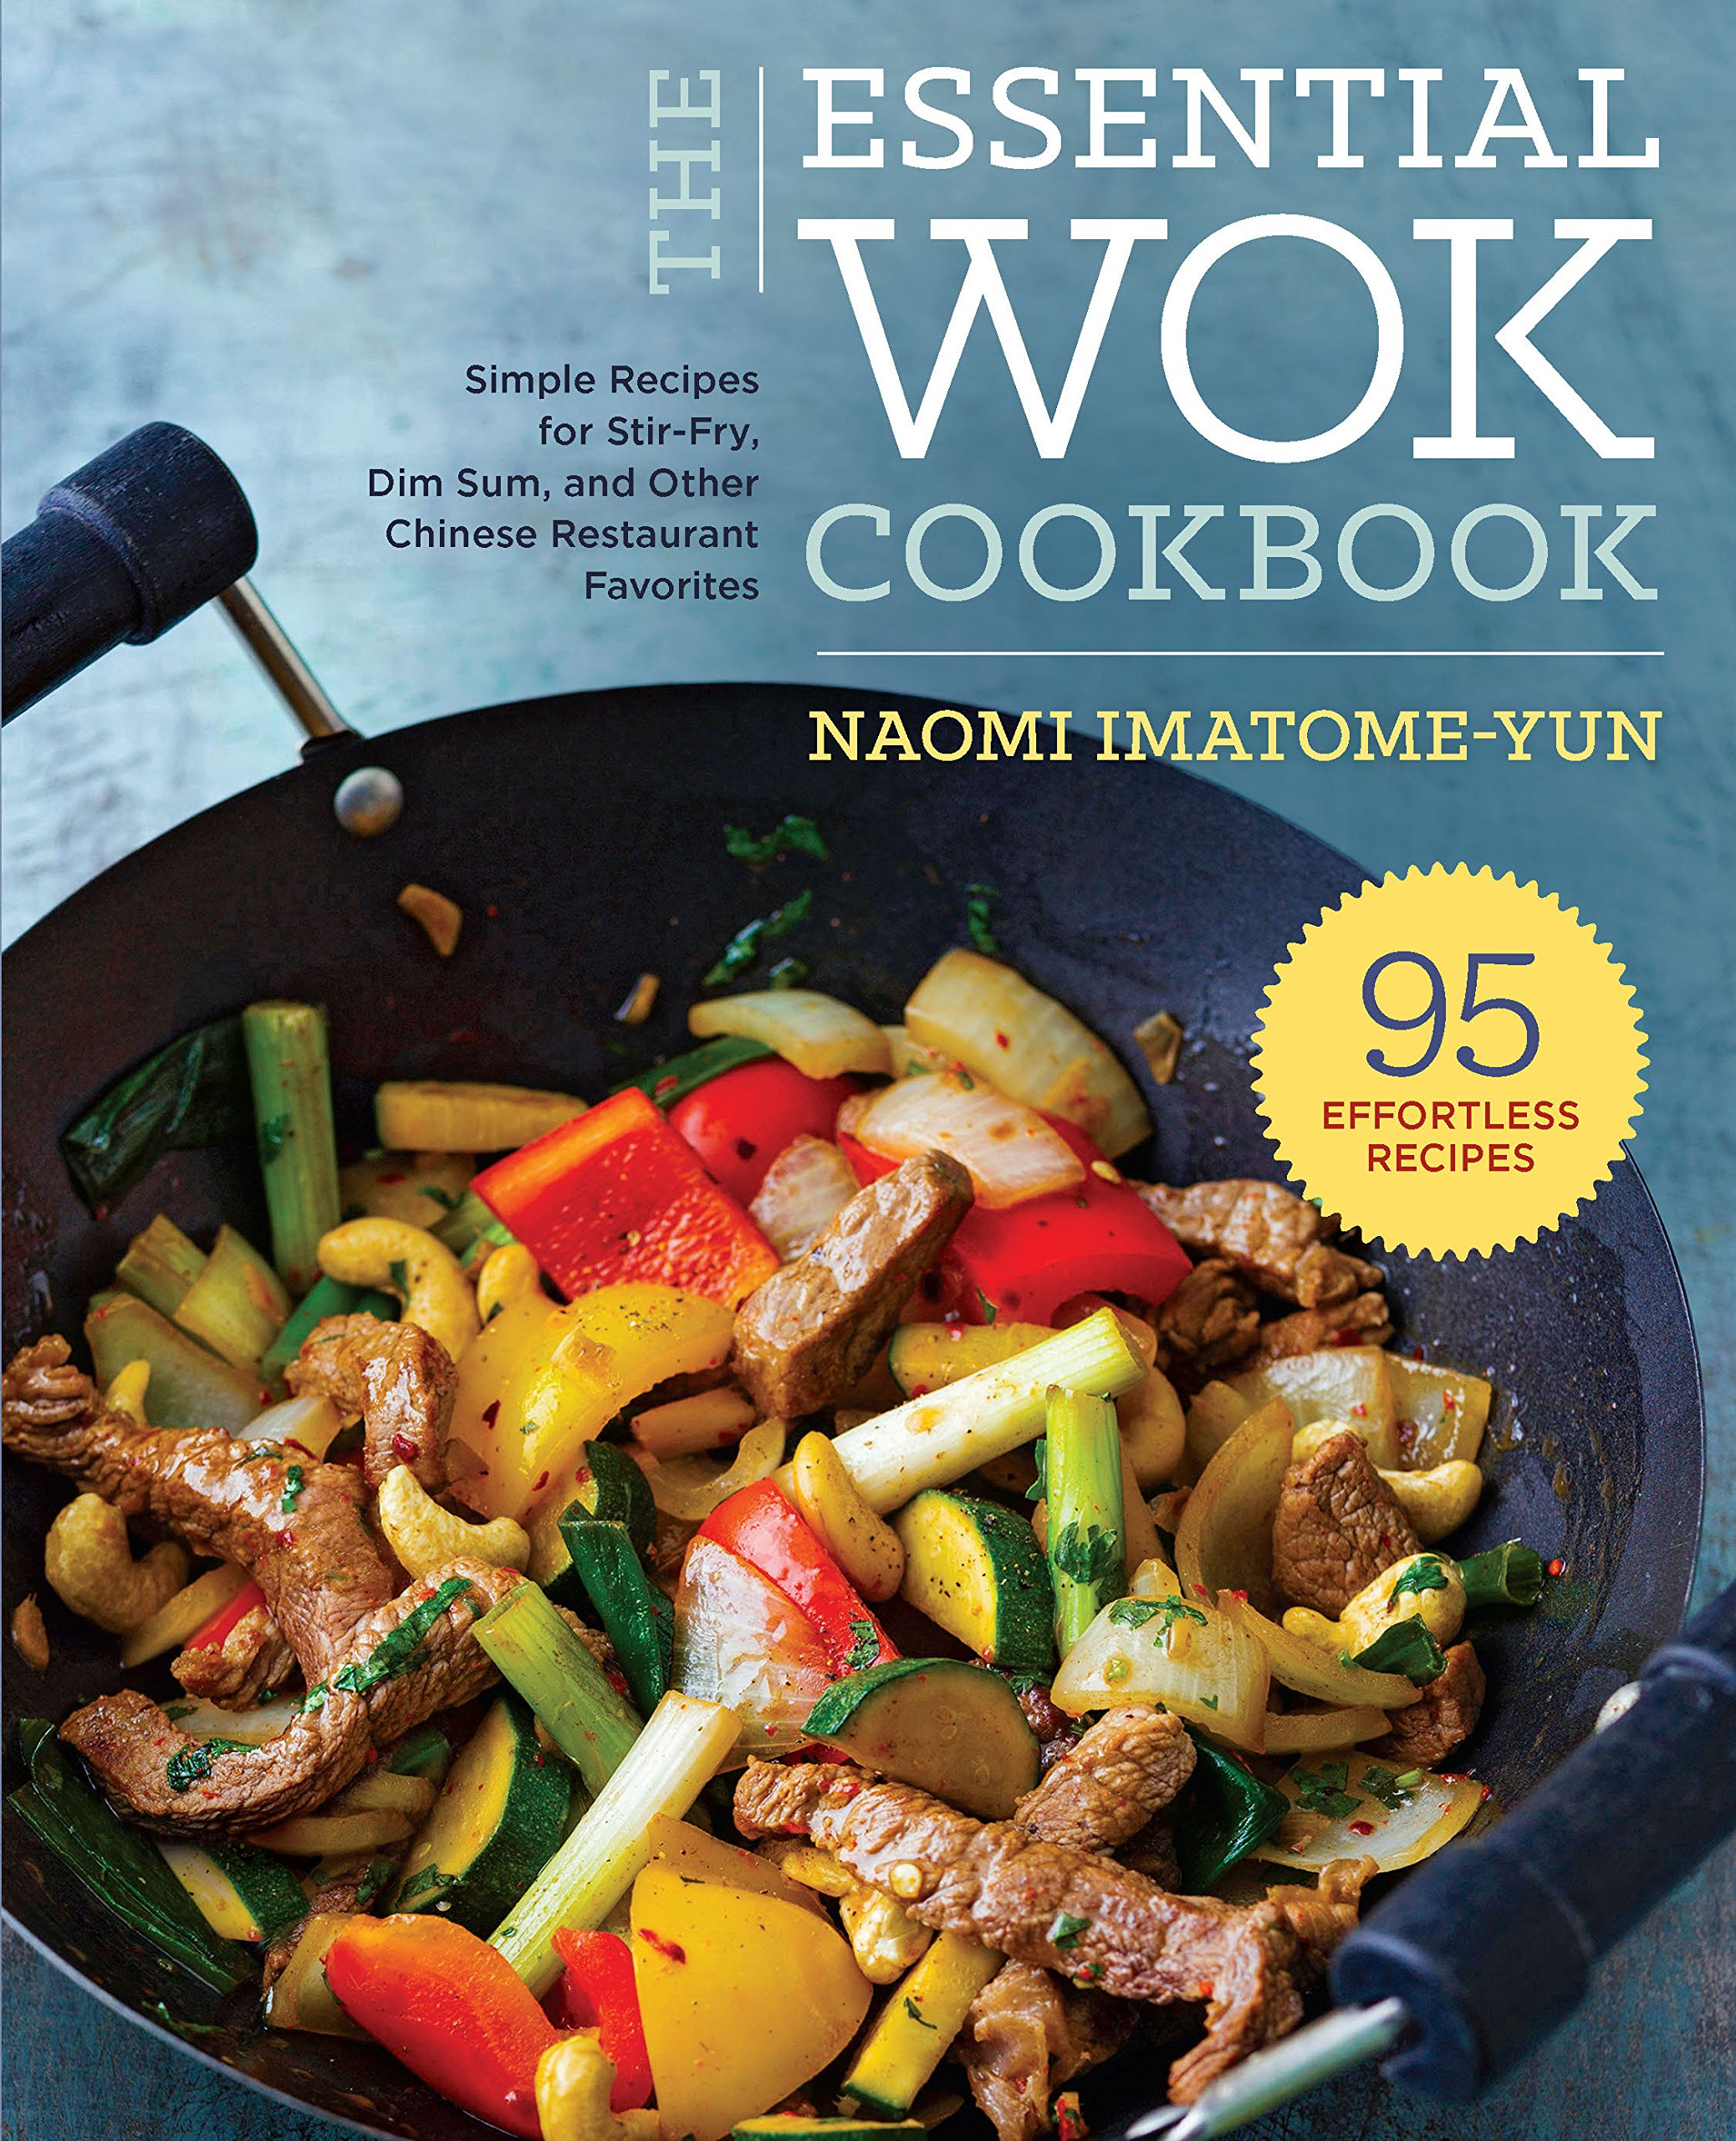 Essential Wok Cookbook Restaurant Favorites product image